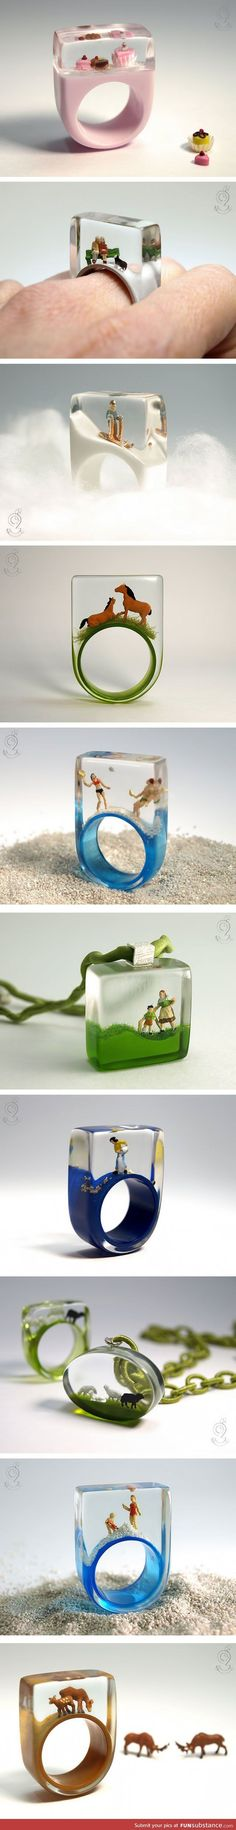 What It Looks Like When You Put Miniature Scenes Inside Rings